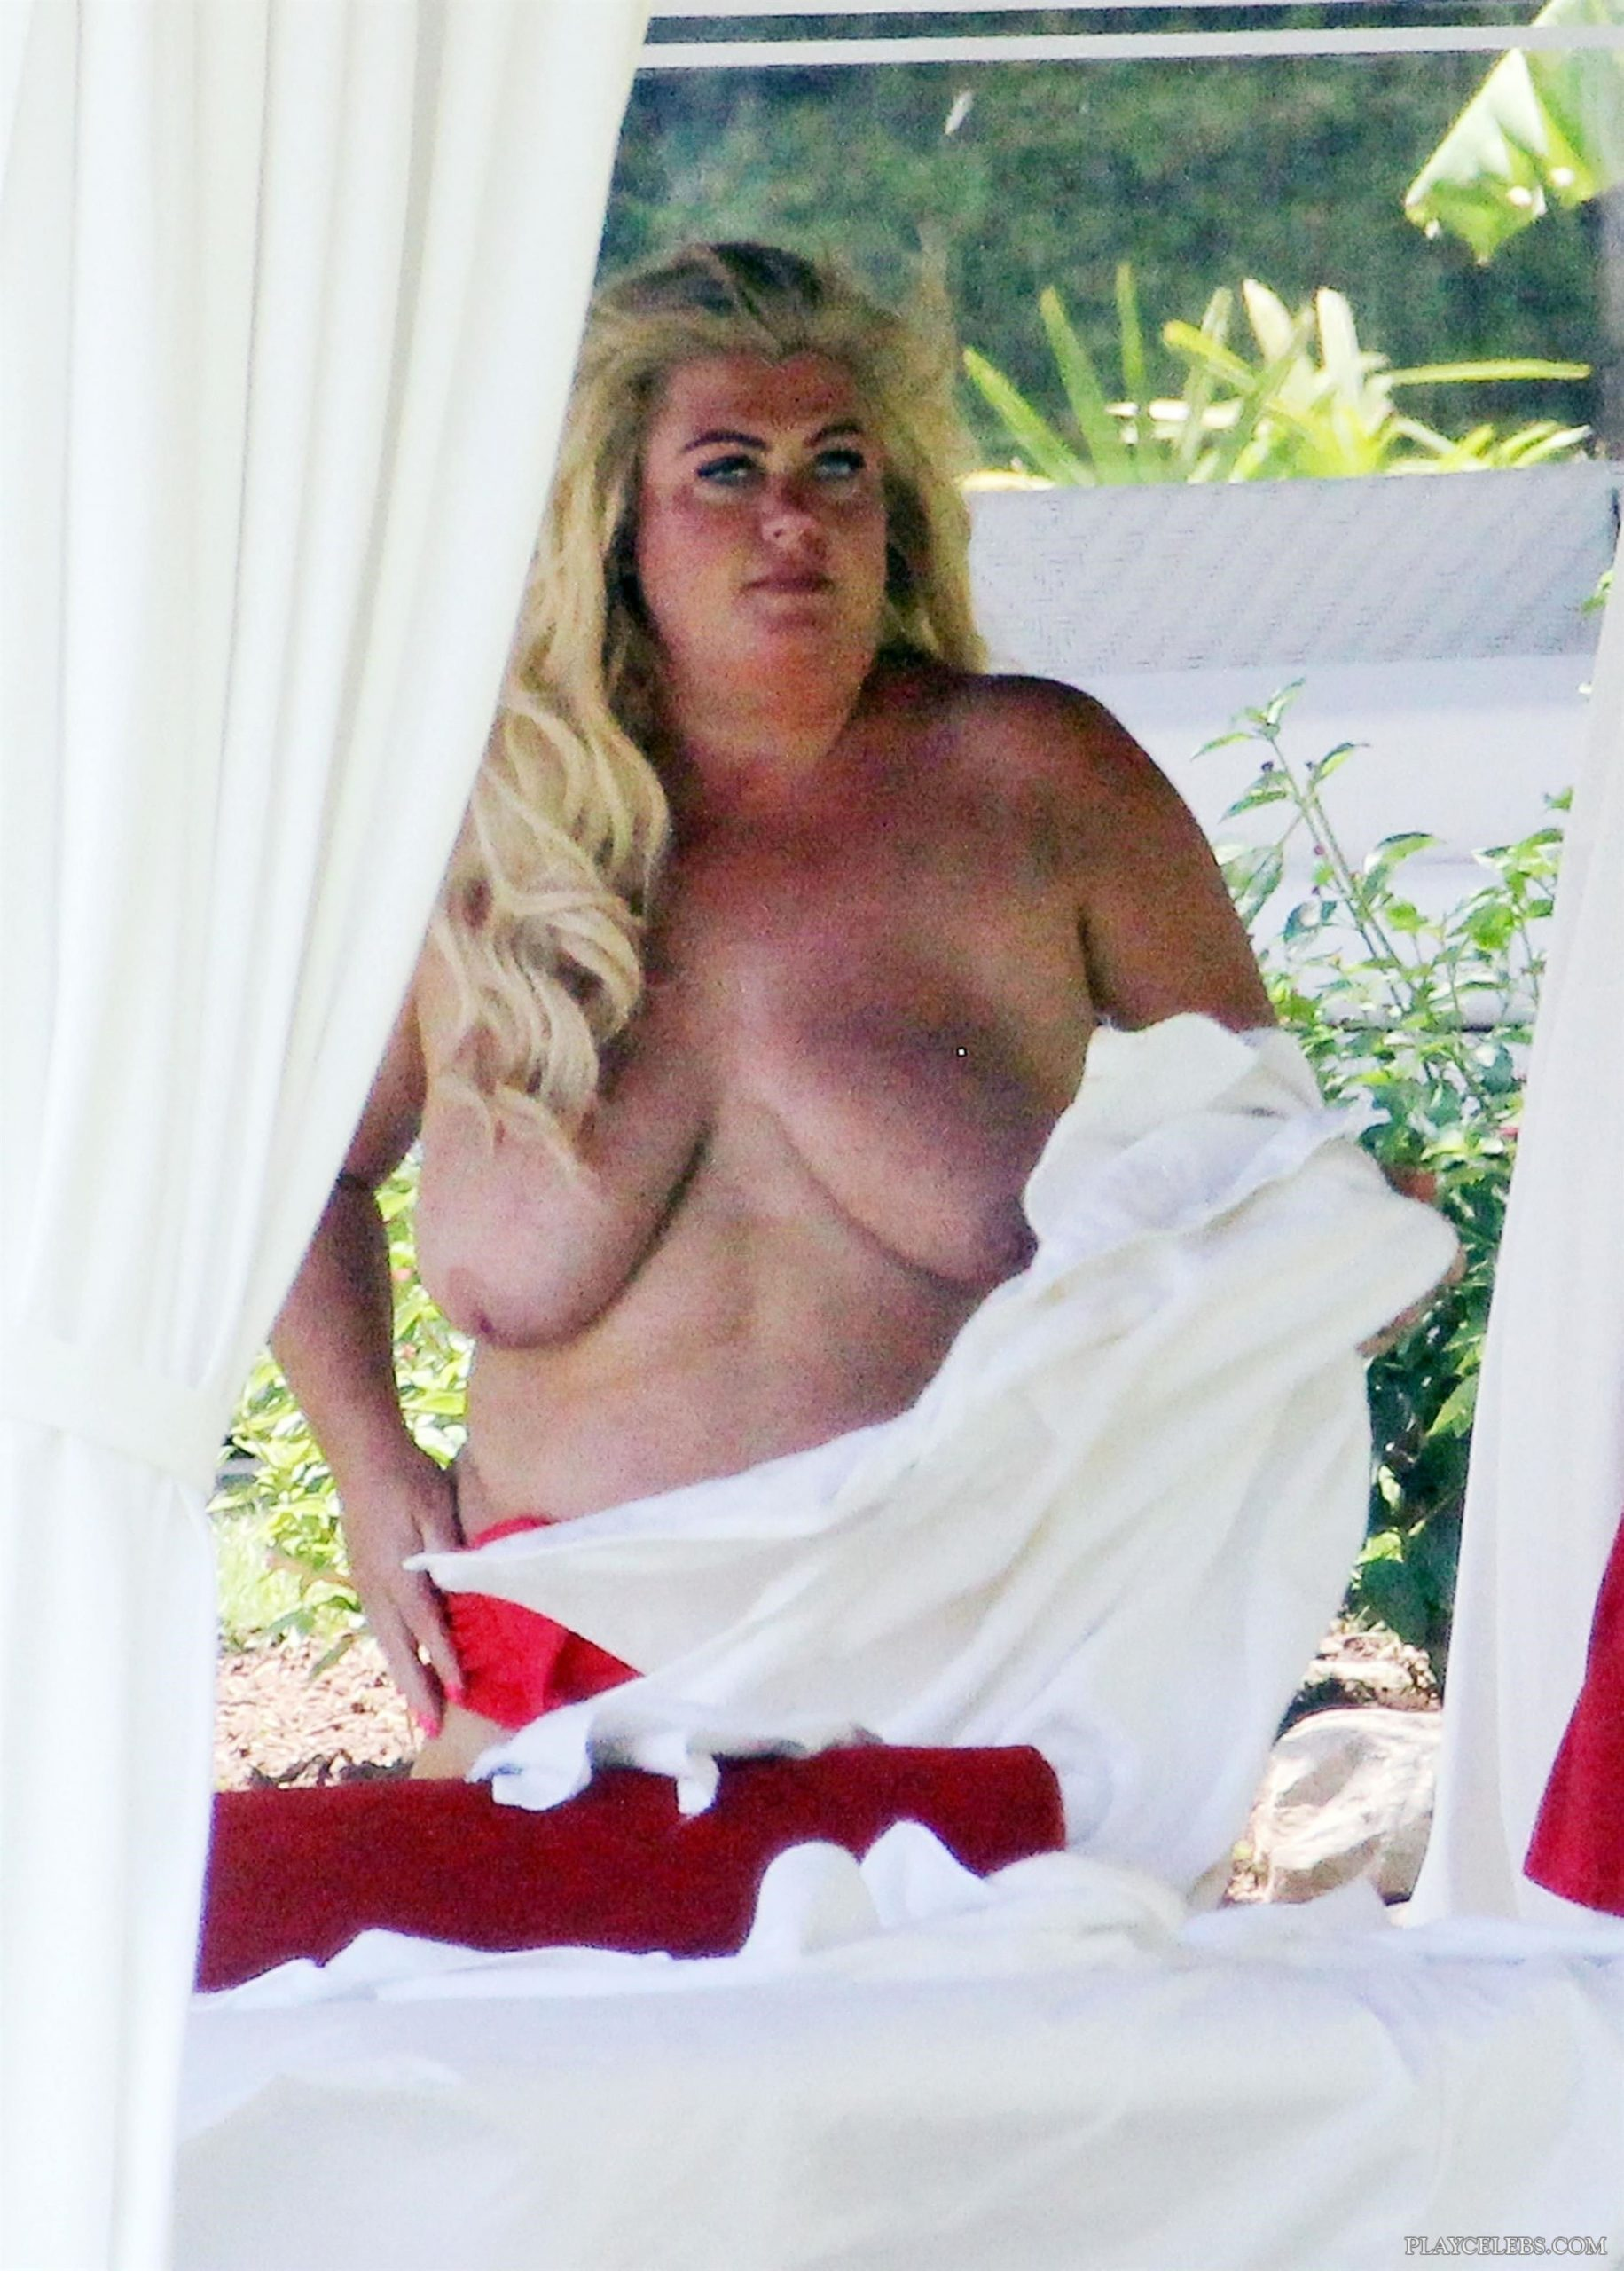 Holy Shit! Gemma Collins Topless On A Beach